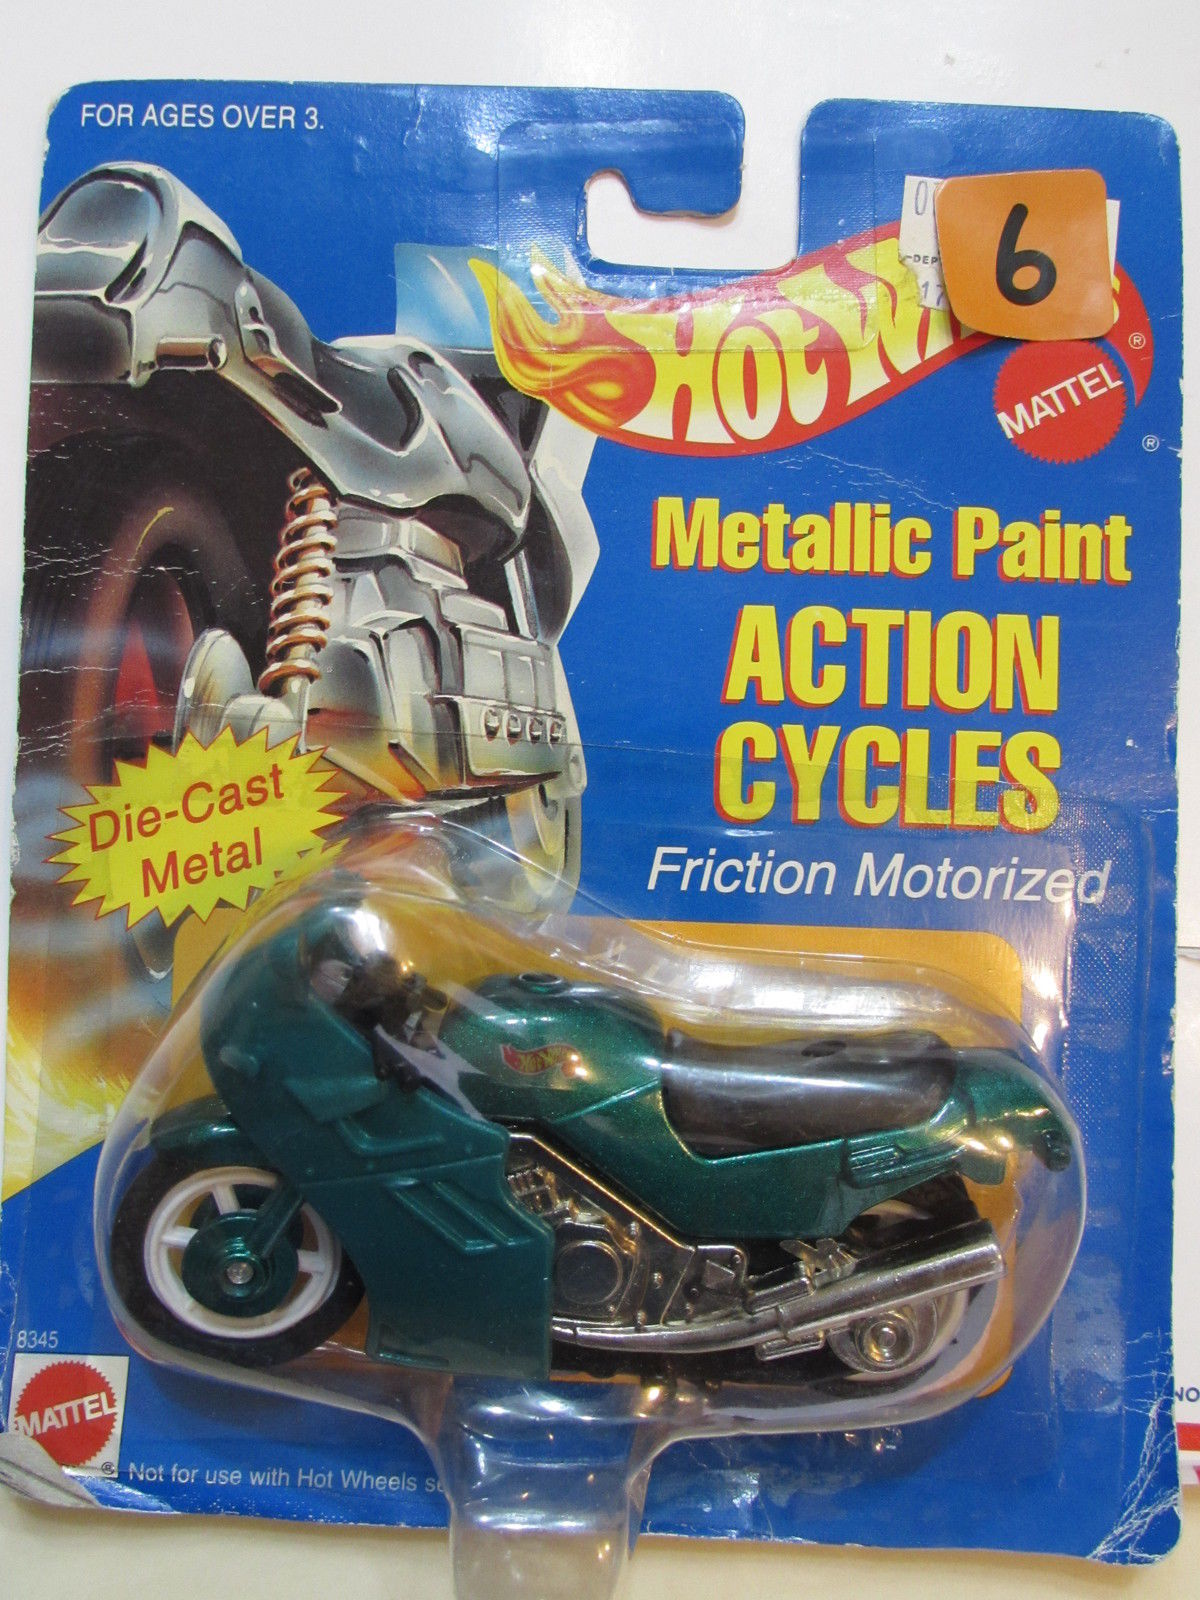 HOT WHEELS 1995 METALLIC PAINT ACTION CYCLES - FRICTION MOTORIZED